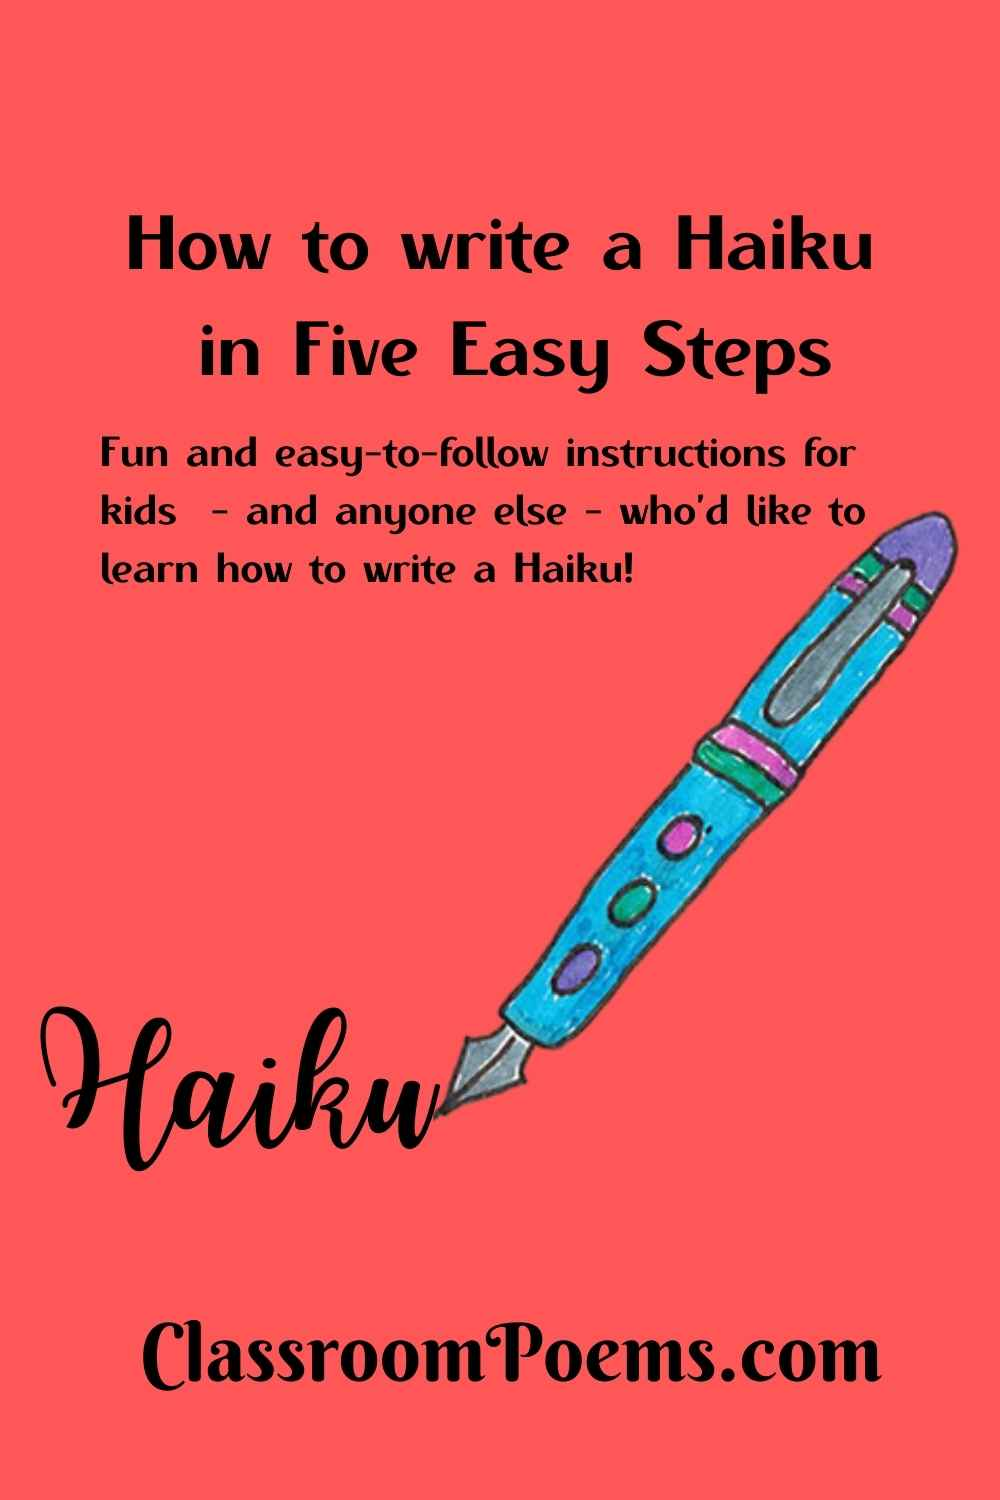 How to Write Haiku by Denise Rodgers at ClassroomPoems.com.